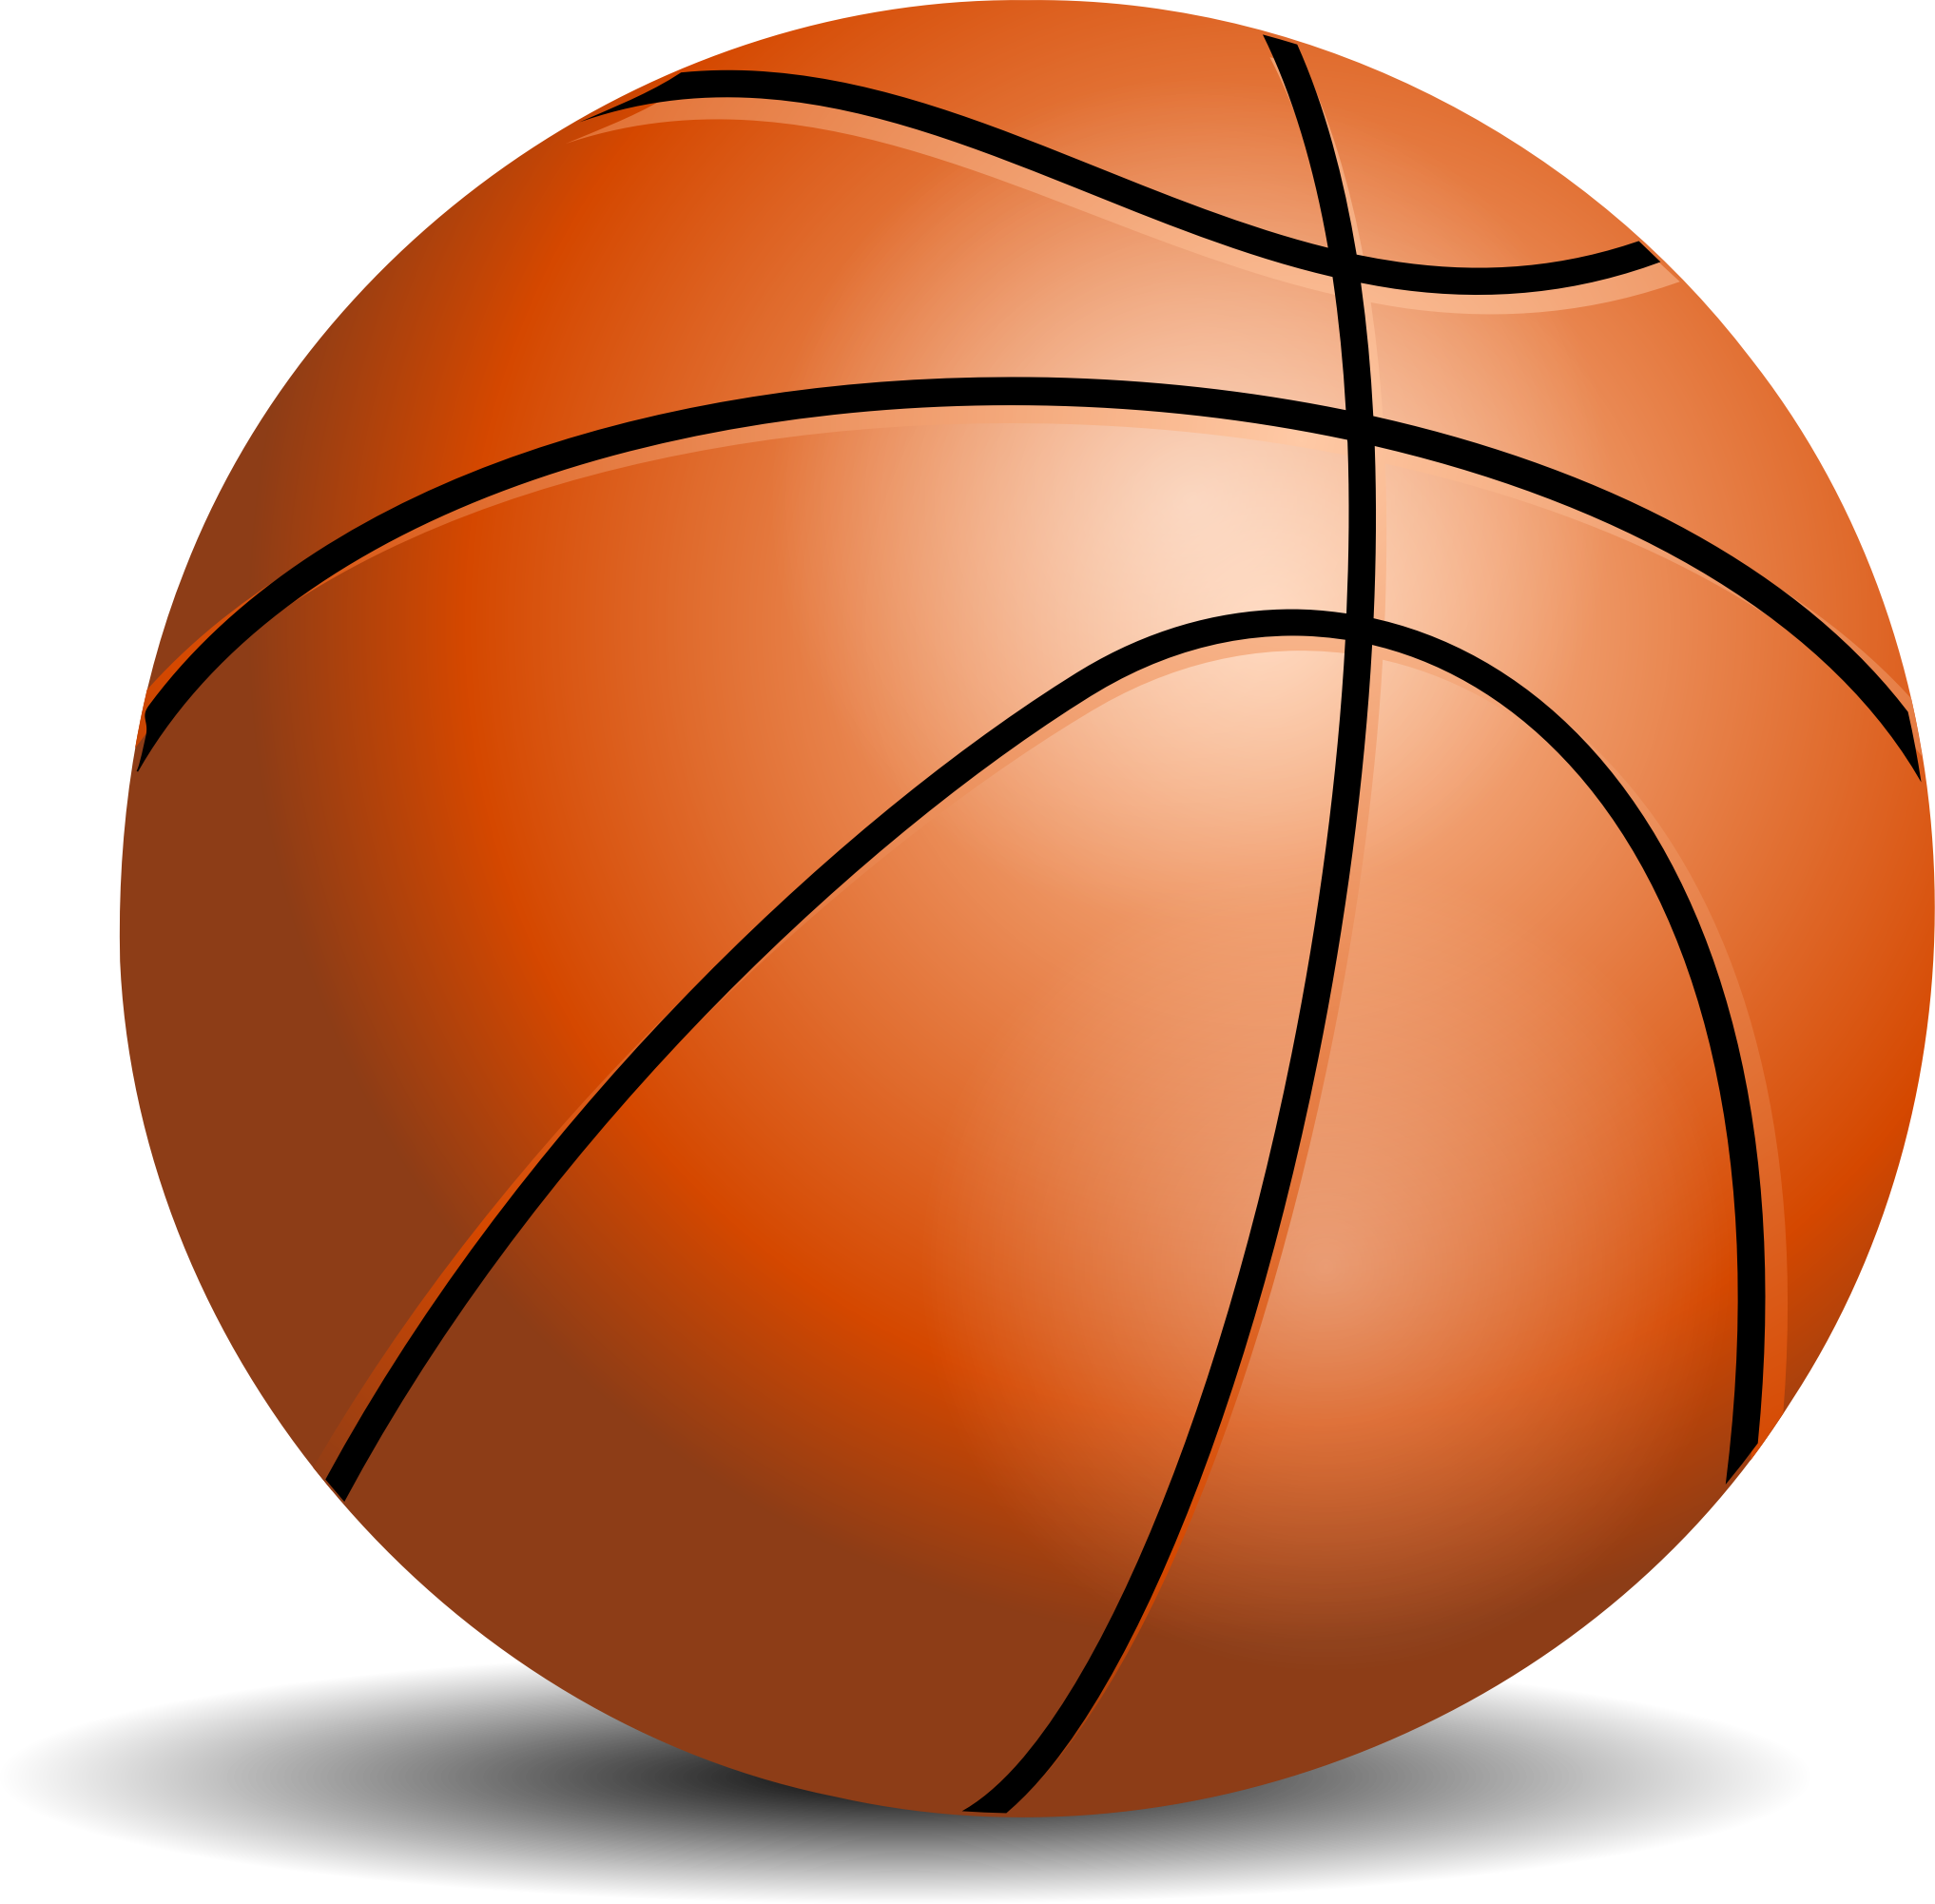 Basketball lines on ball clipart png free library Clipart - basketball, krepsinio kamuolys, ball png free library